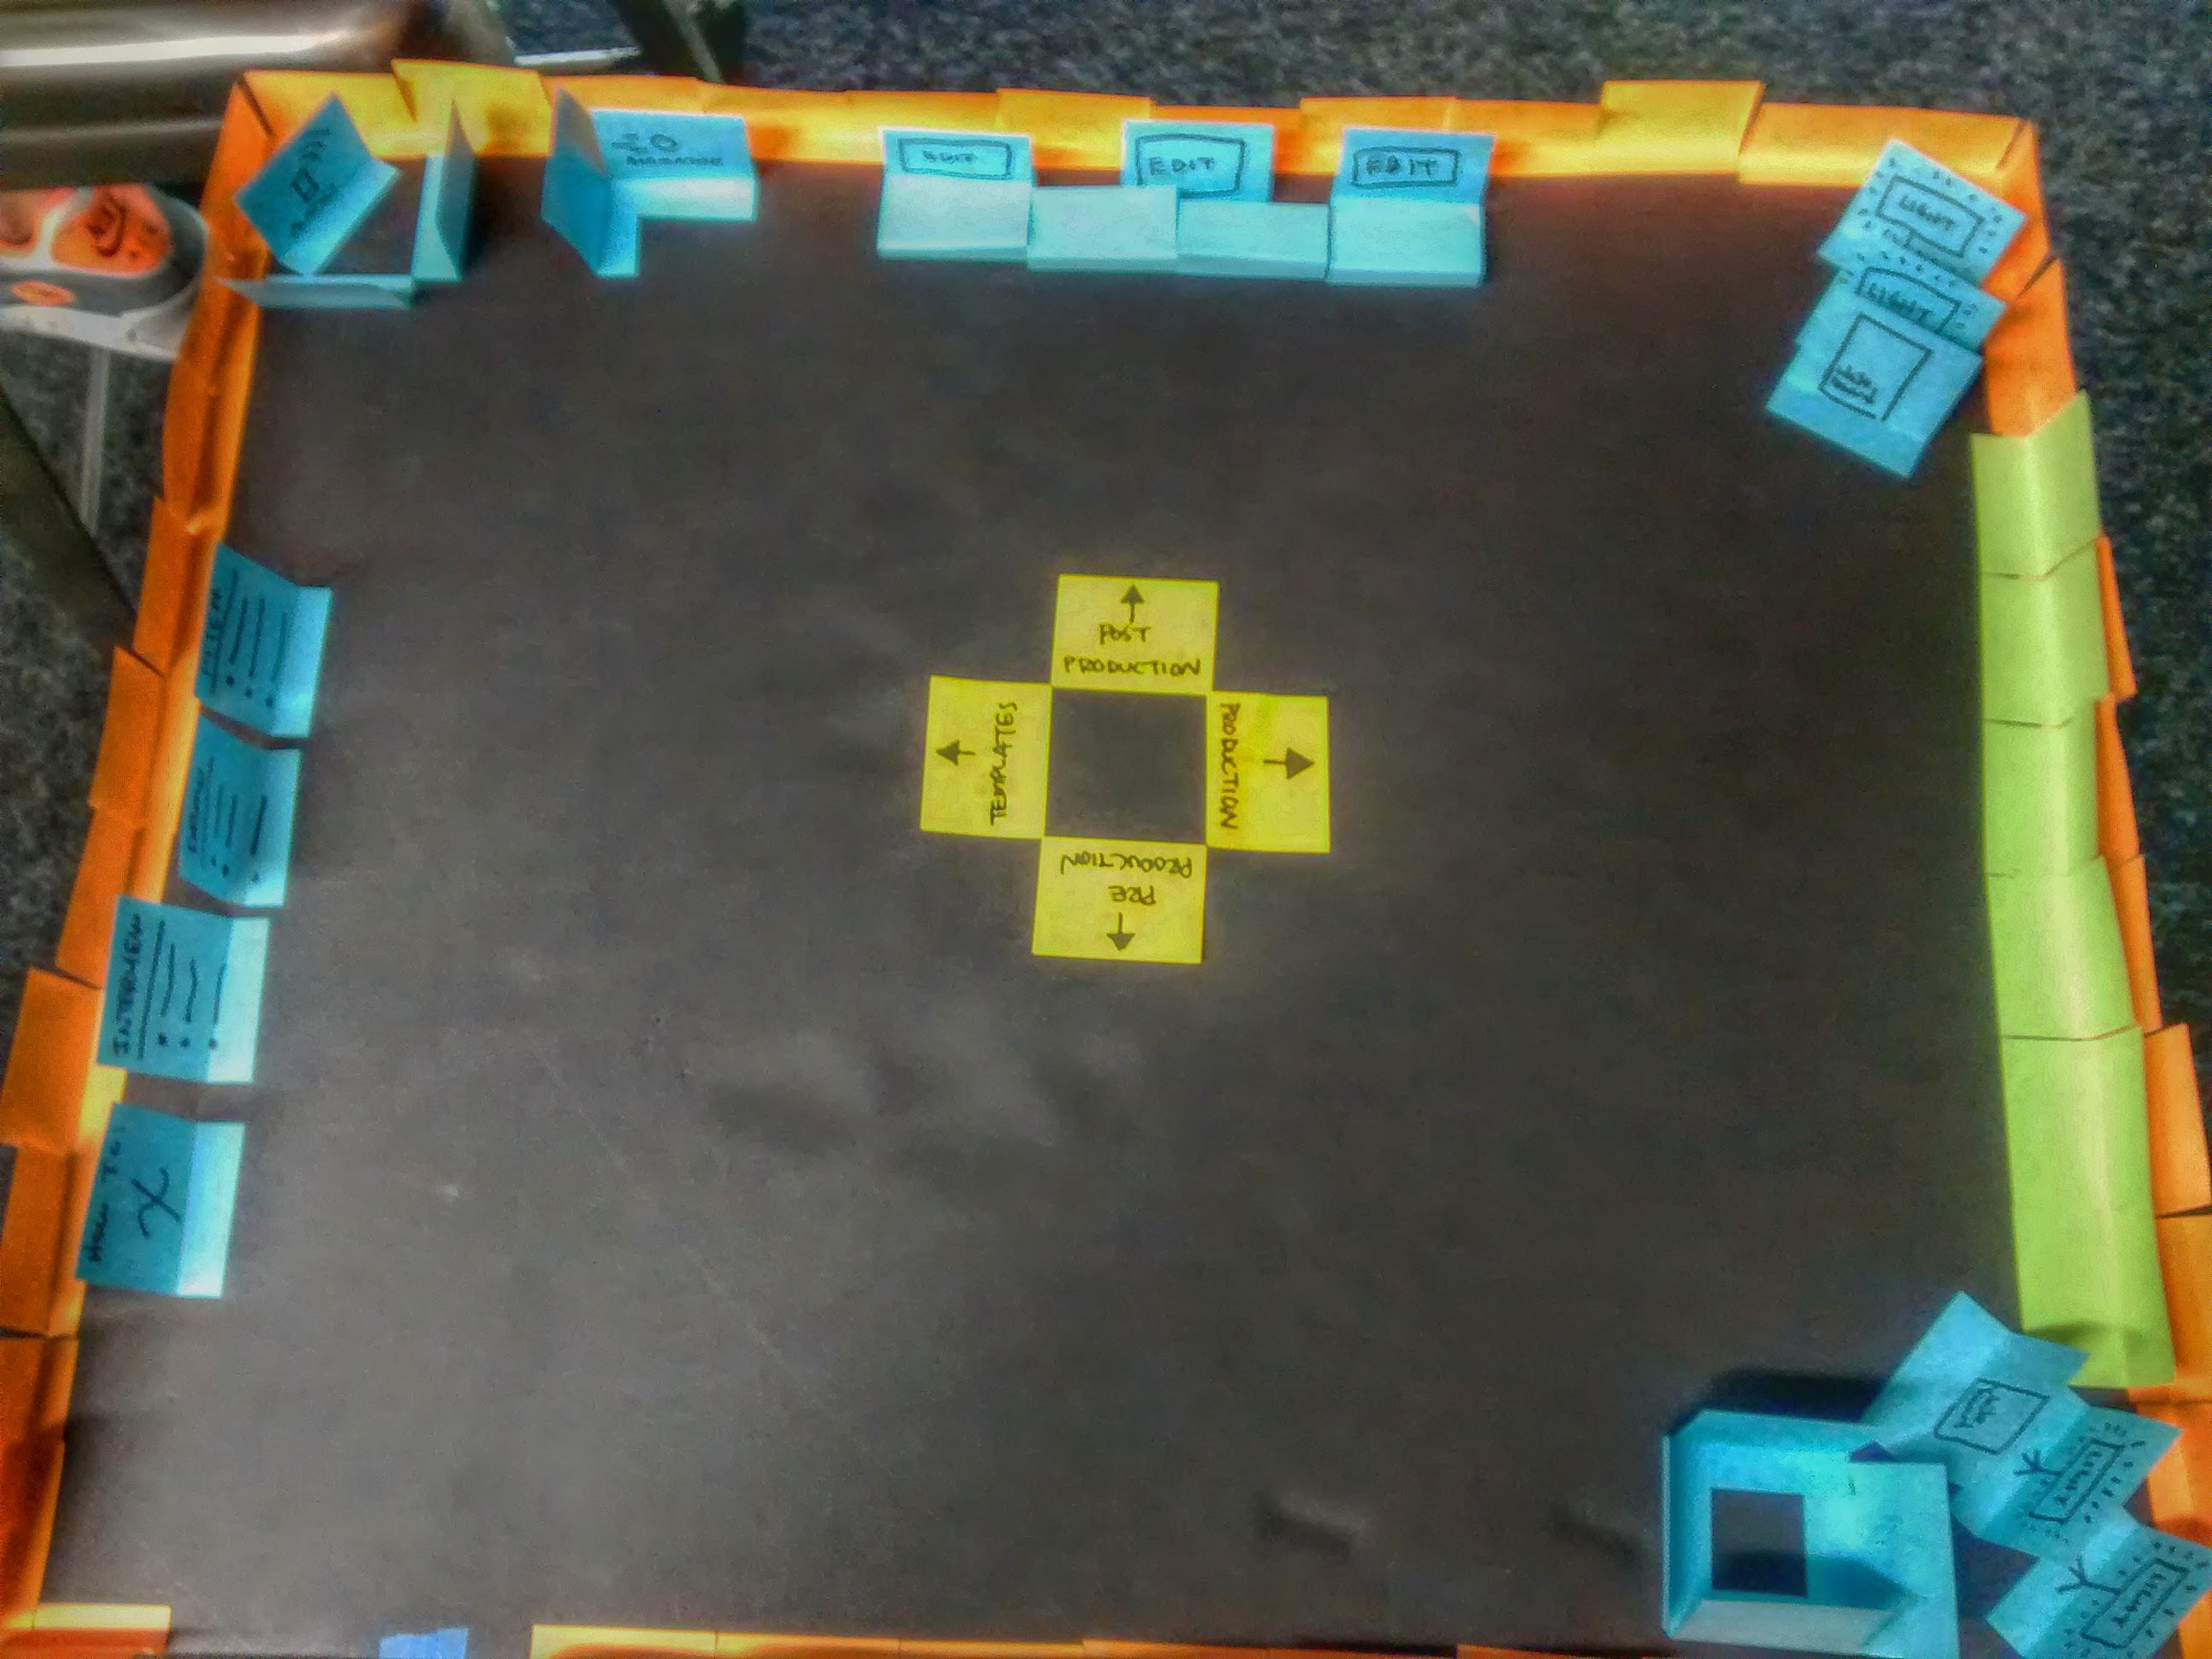 Seamus created an early prototype of the space using sticky notes on black poster board.